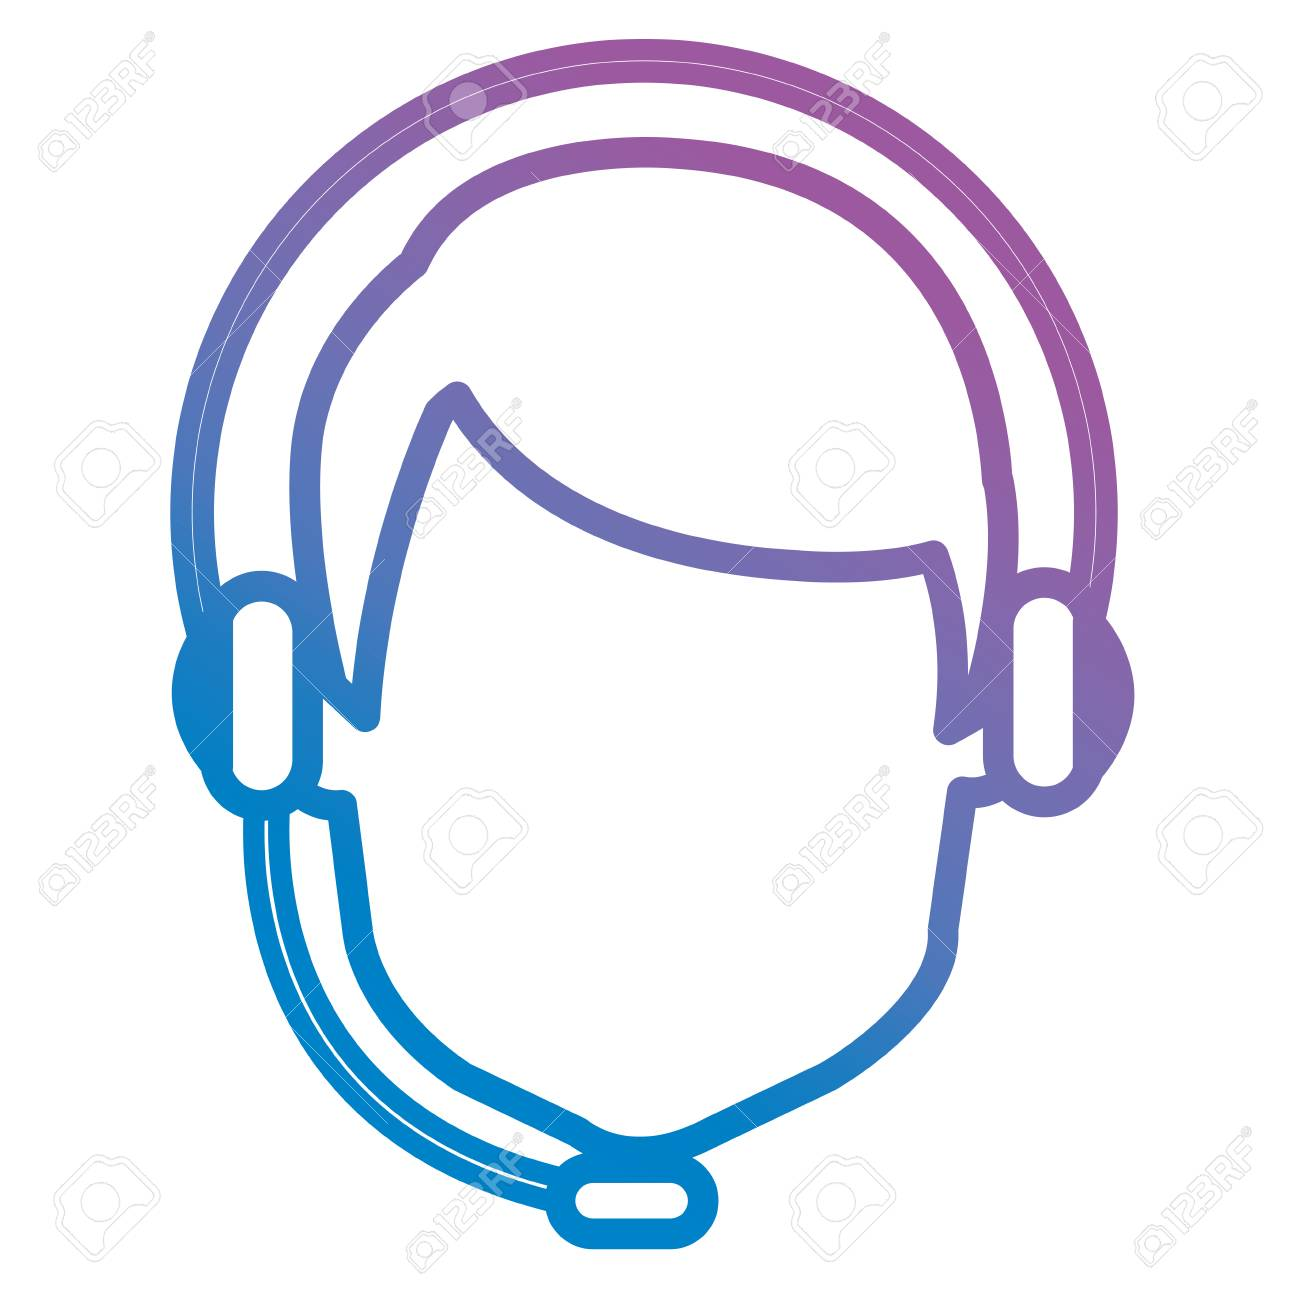 call center agent with headset vector illustration design royalty free cliparts vectors and stock illustration image 105557857 call center agent with headset vector illustration design